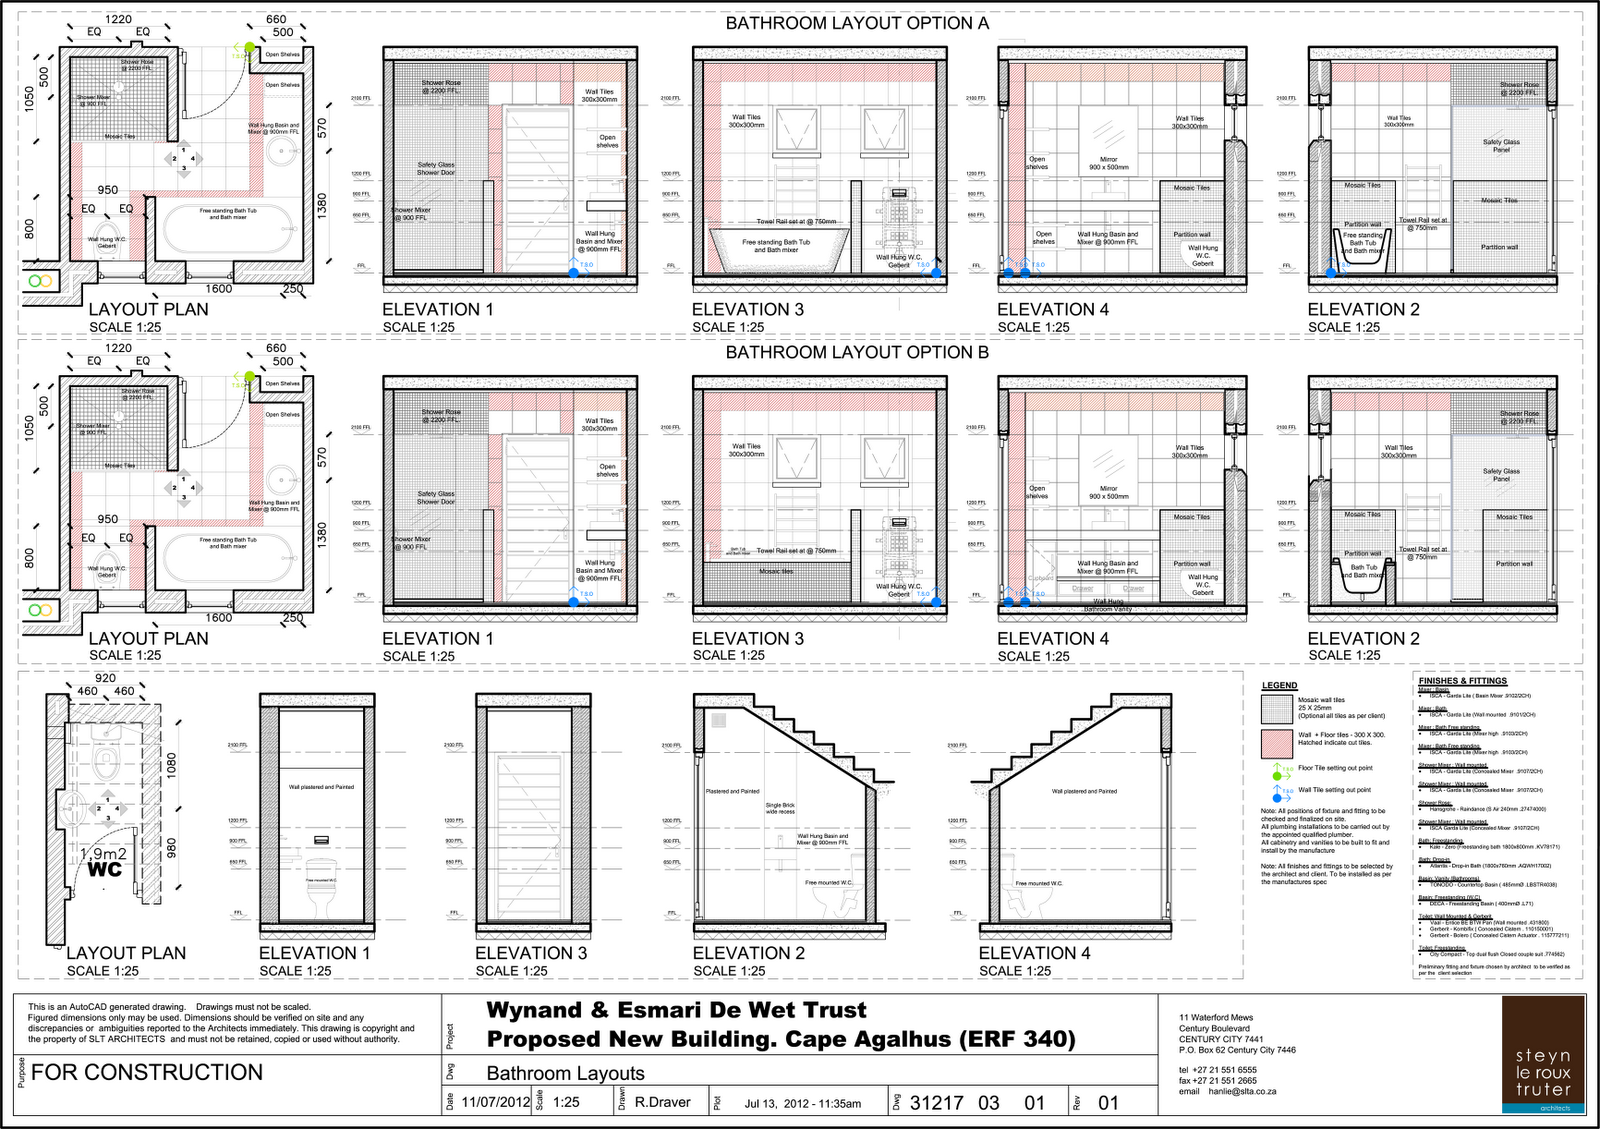 Small Bathroom Design Layouts 2017 2018 Best Cars Reviews Small Bathroom Layout Small Bathroom Designs Layout Small Bathroom Design Plans